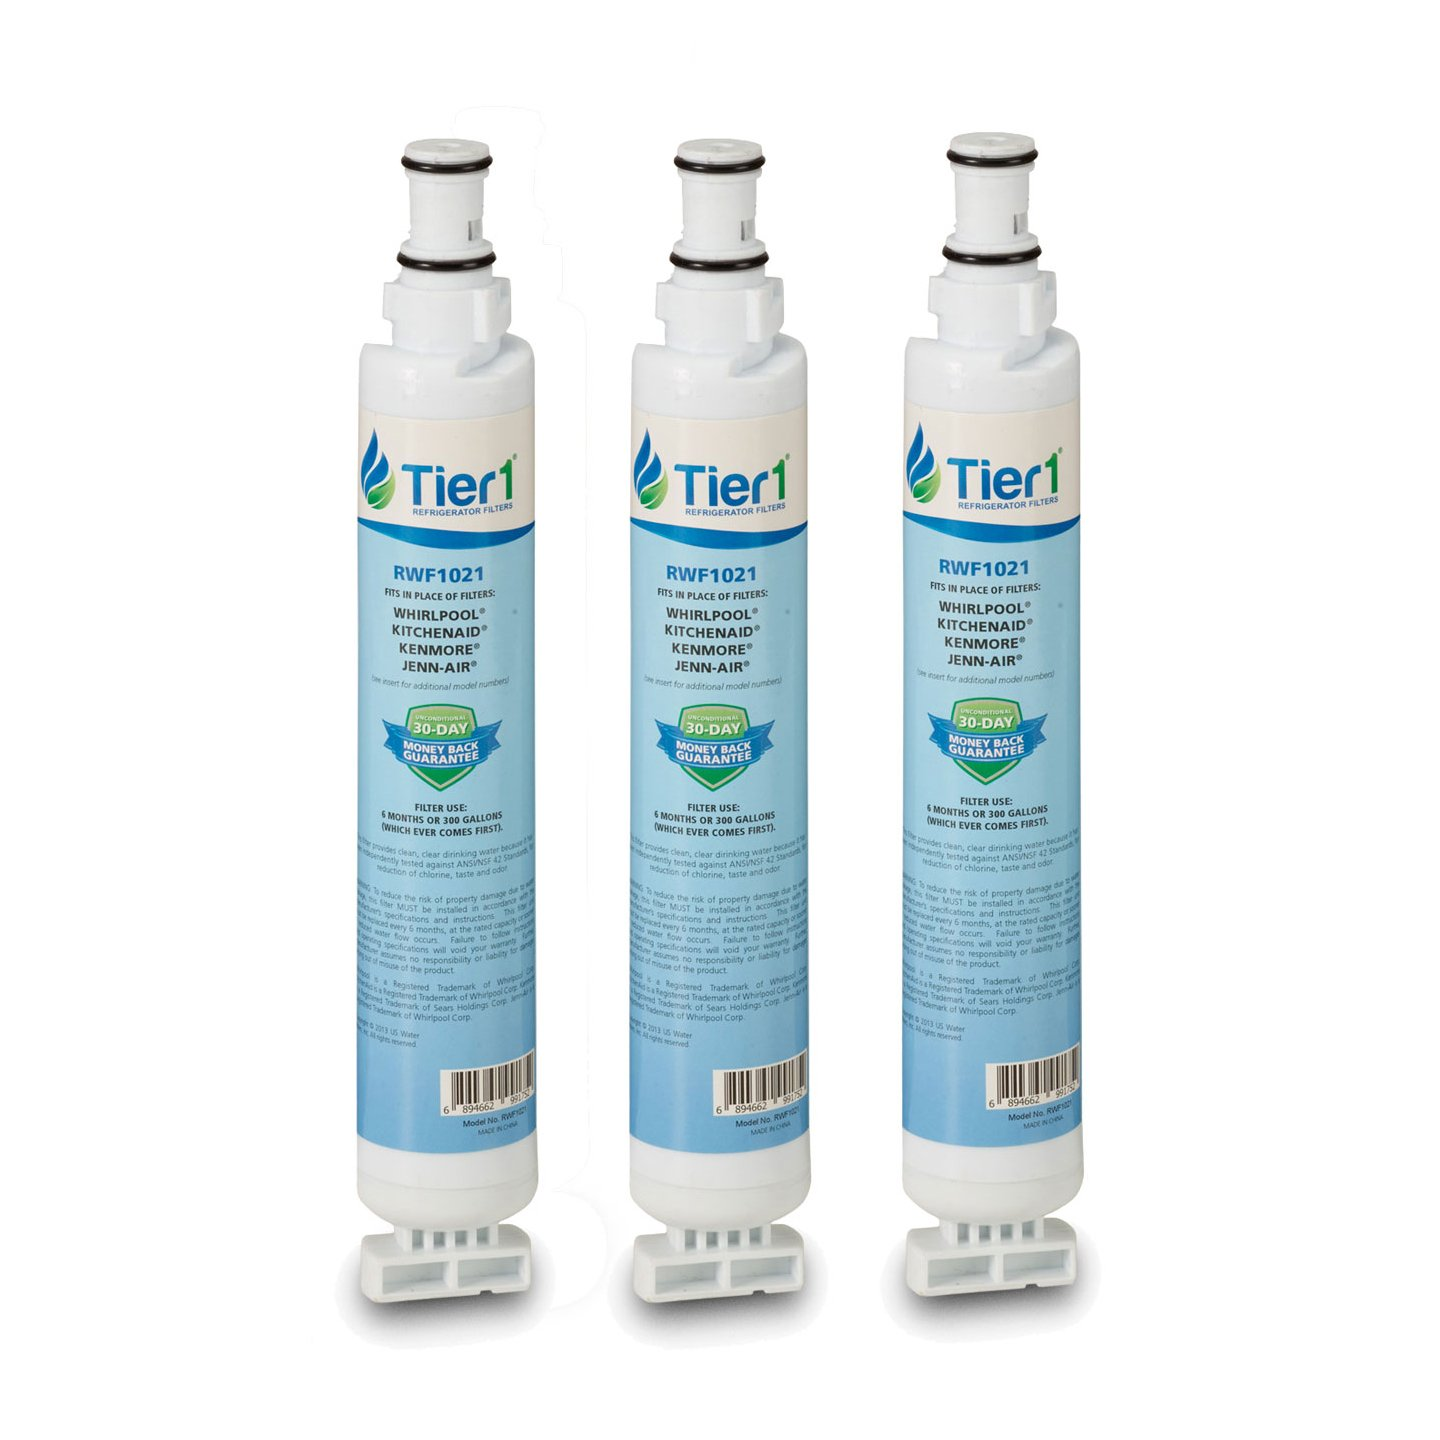 Tier1 Replacement for Whirlpool 4396701, EDR6D1, Kenmore 9915, 46-9915, NL120V, 4396701, 4396702 Refrigerator Water Filter 3 Pack